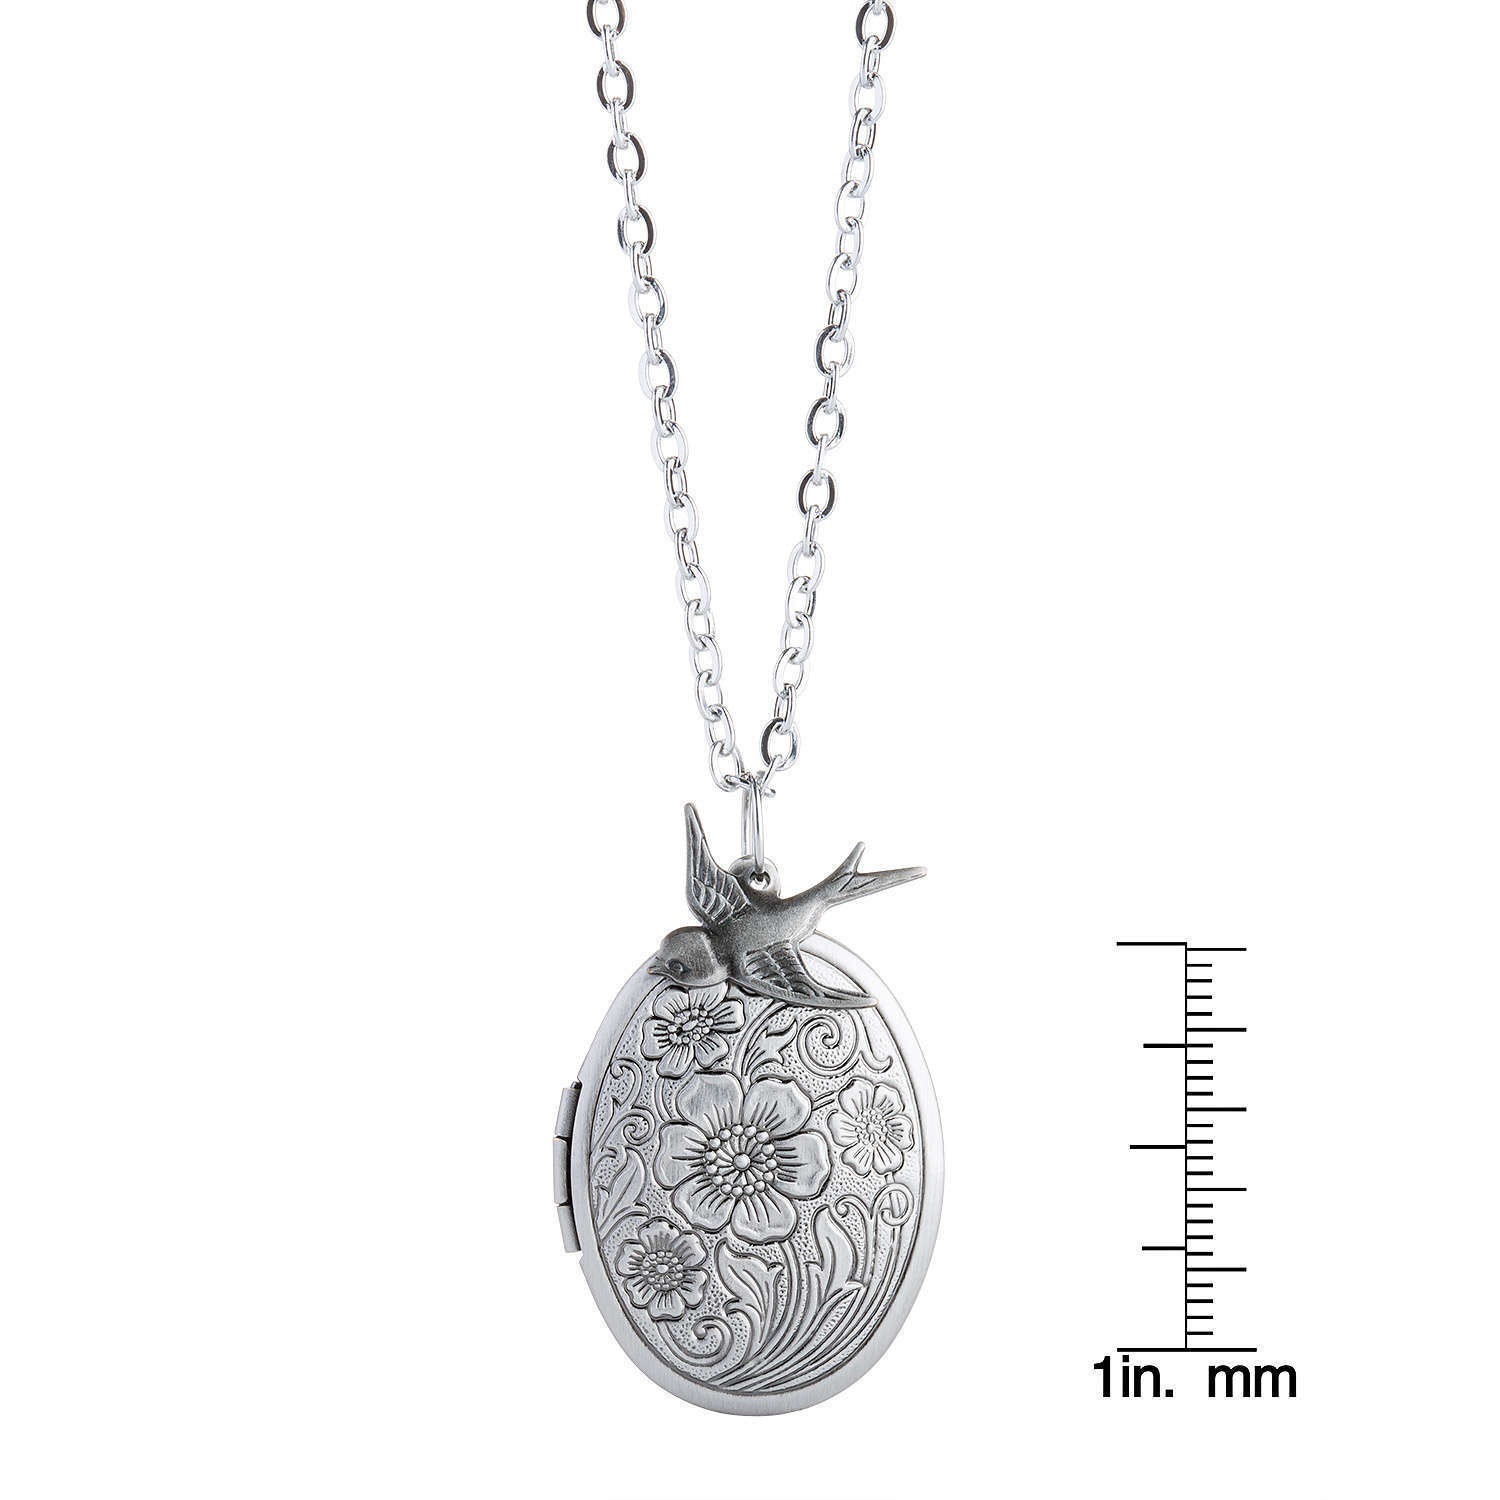 lockets in anatomical necklace sterling silver heart locket charm